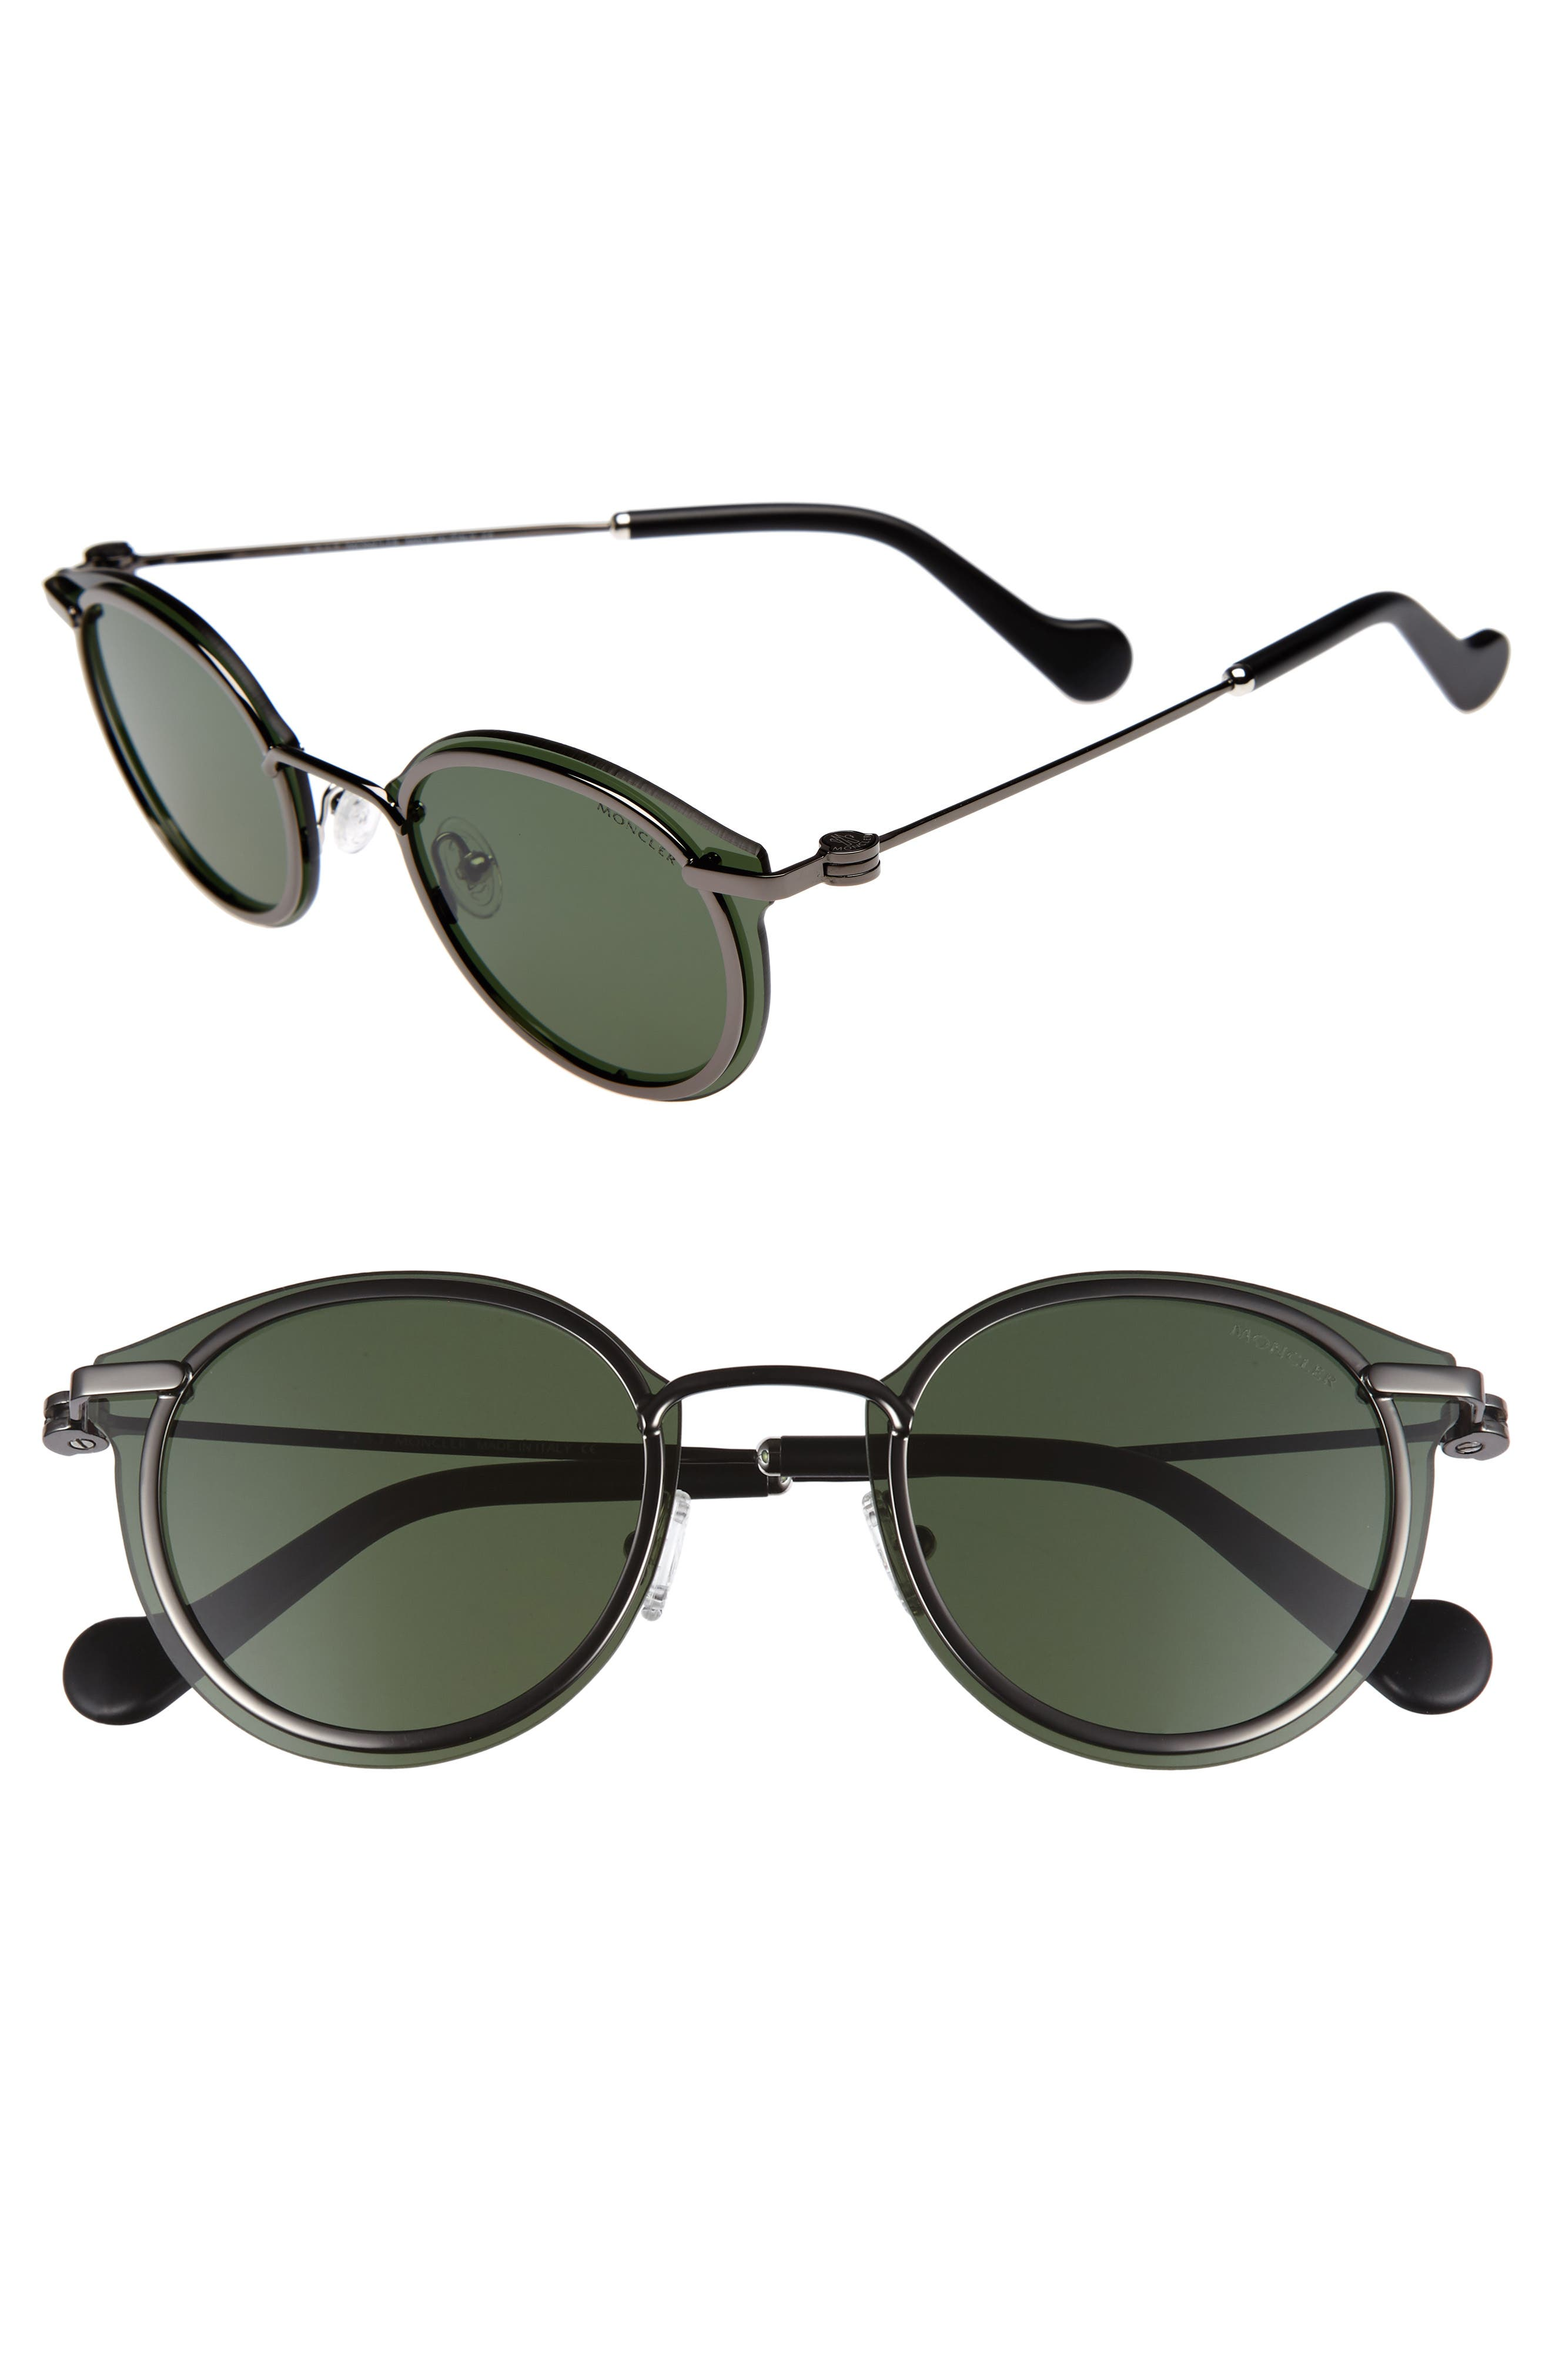 58mm Mirrored Round Sunglasses,                         Main,                         color, Shiny Gunmetal/ Green